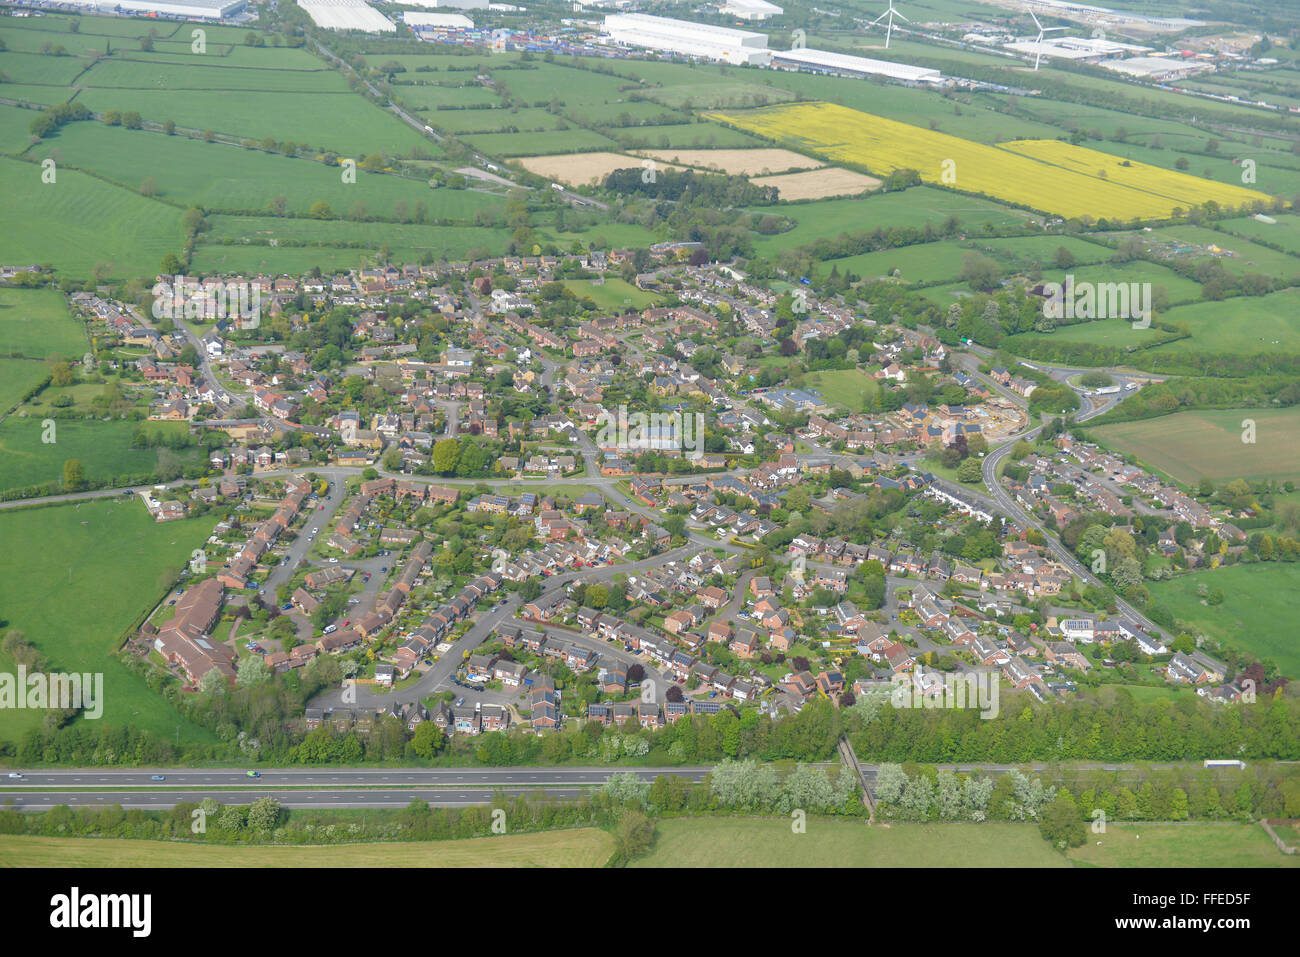 An aerial view of the Northamptonshire village of Kilsby - Stock Image